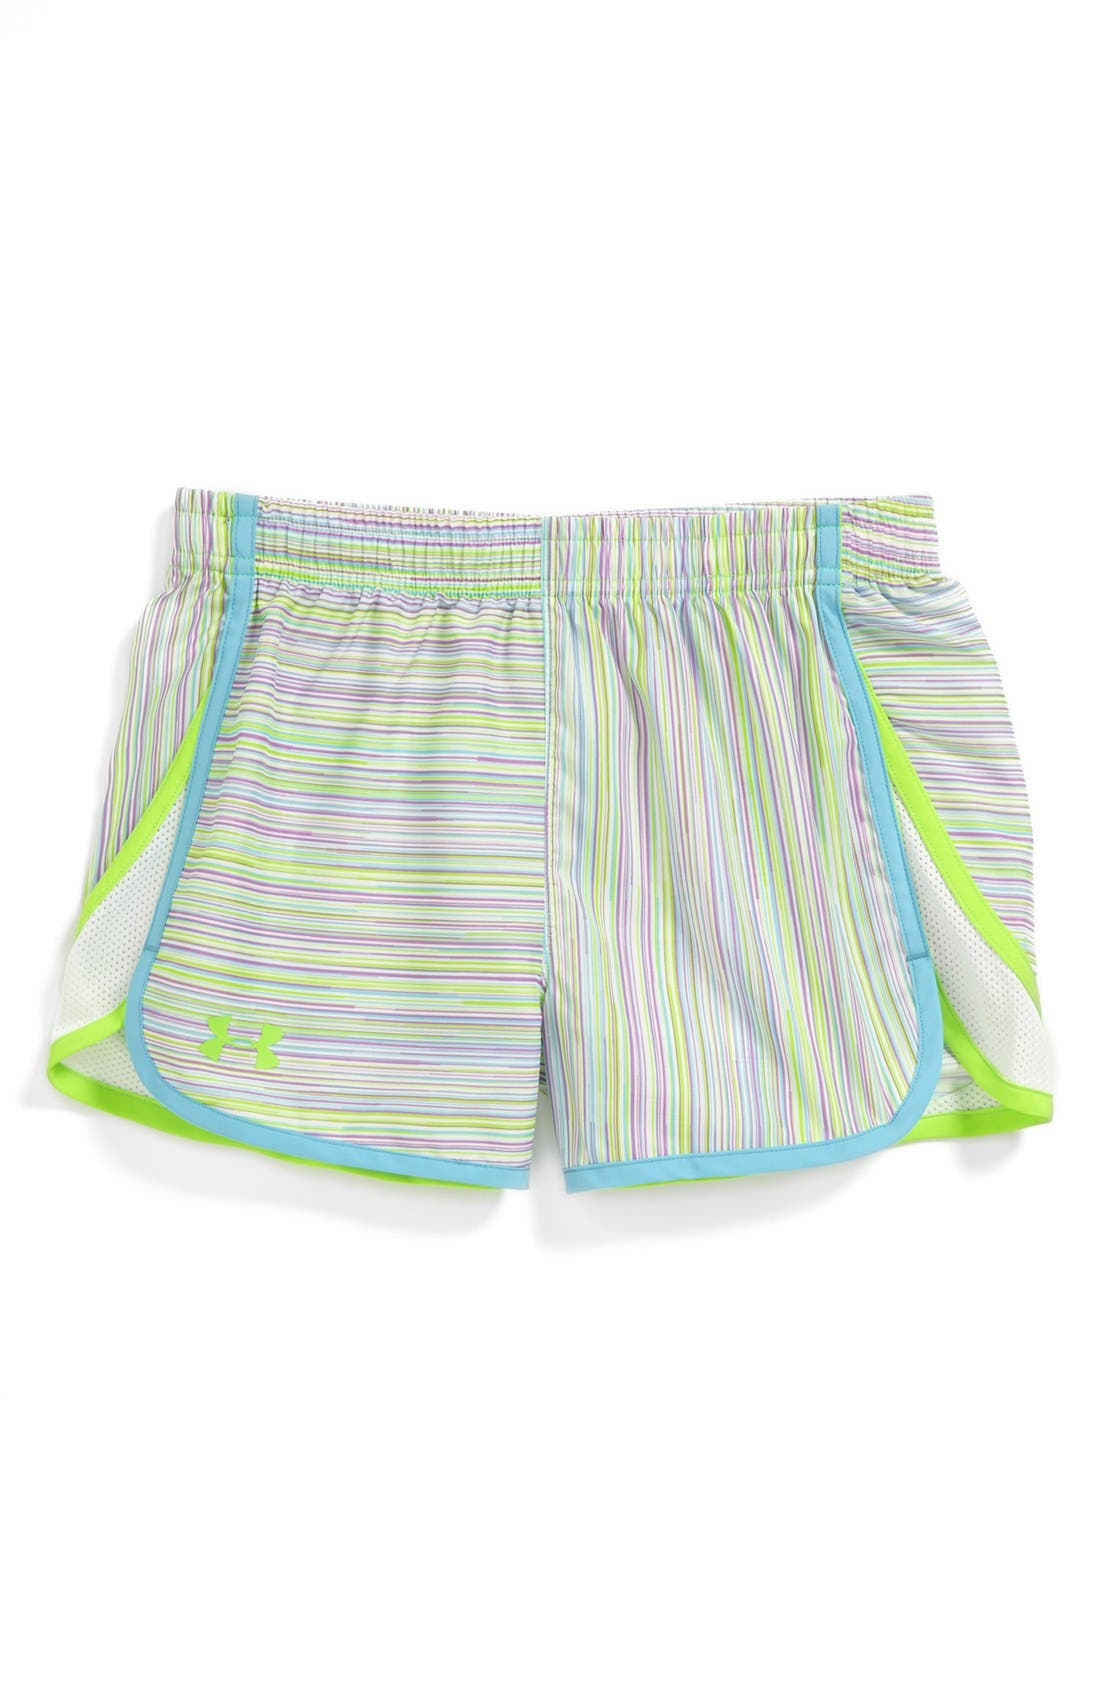 Alternate Image 1 Selected - Under Armour 'Escape' HeatGear® Print Shorts (Big Girls)